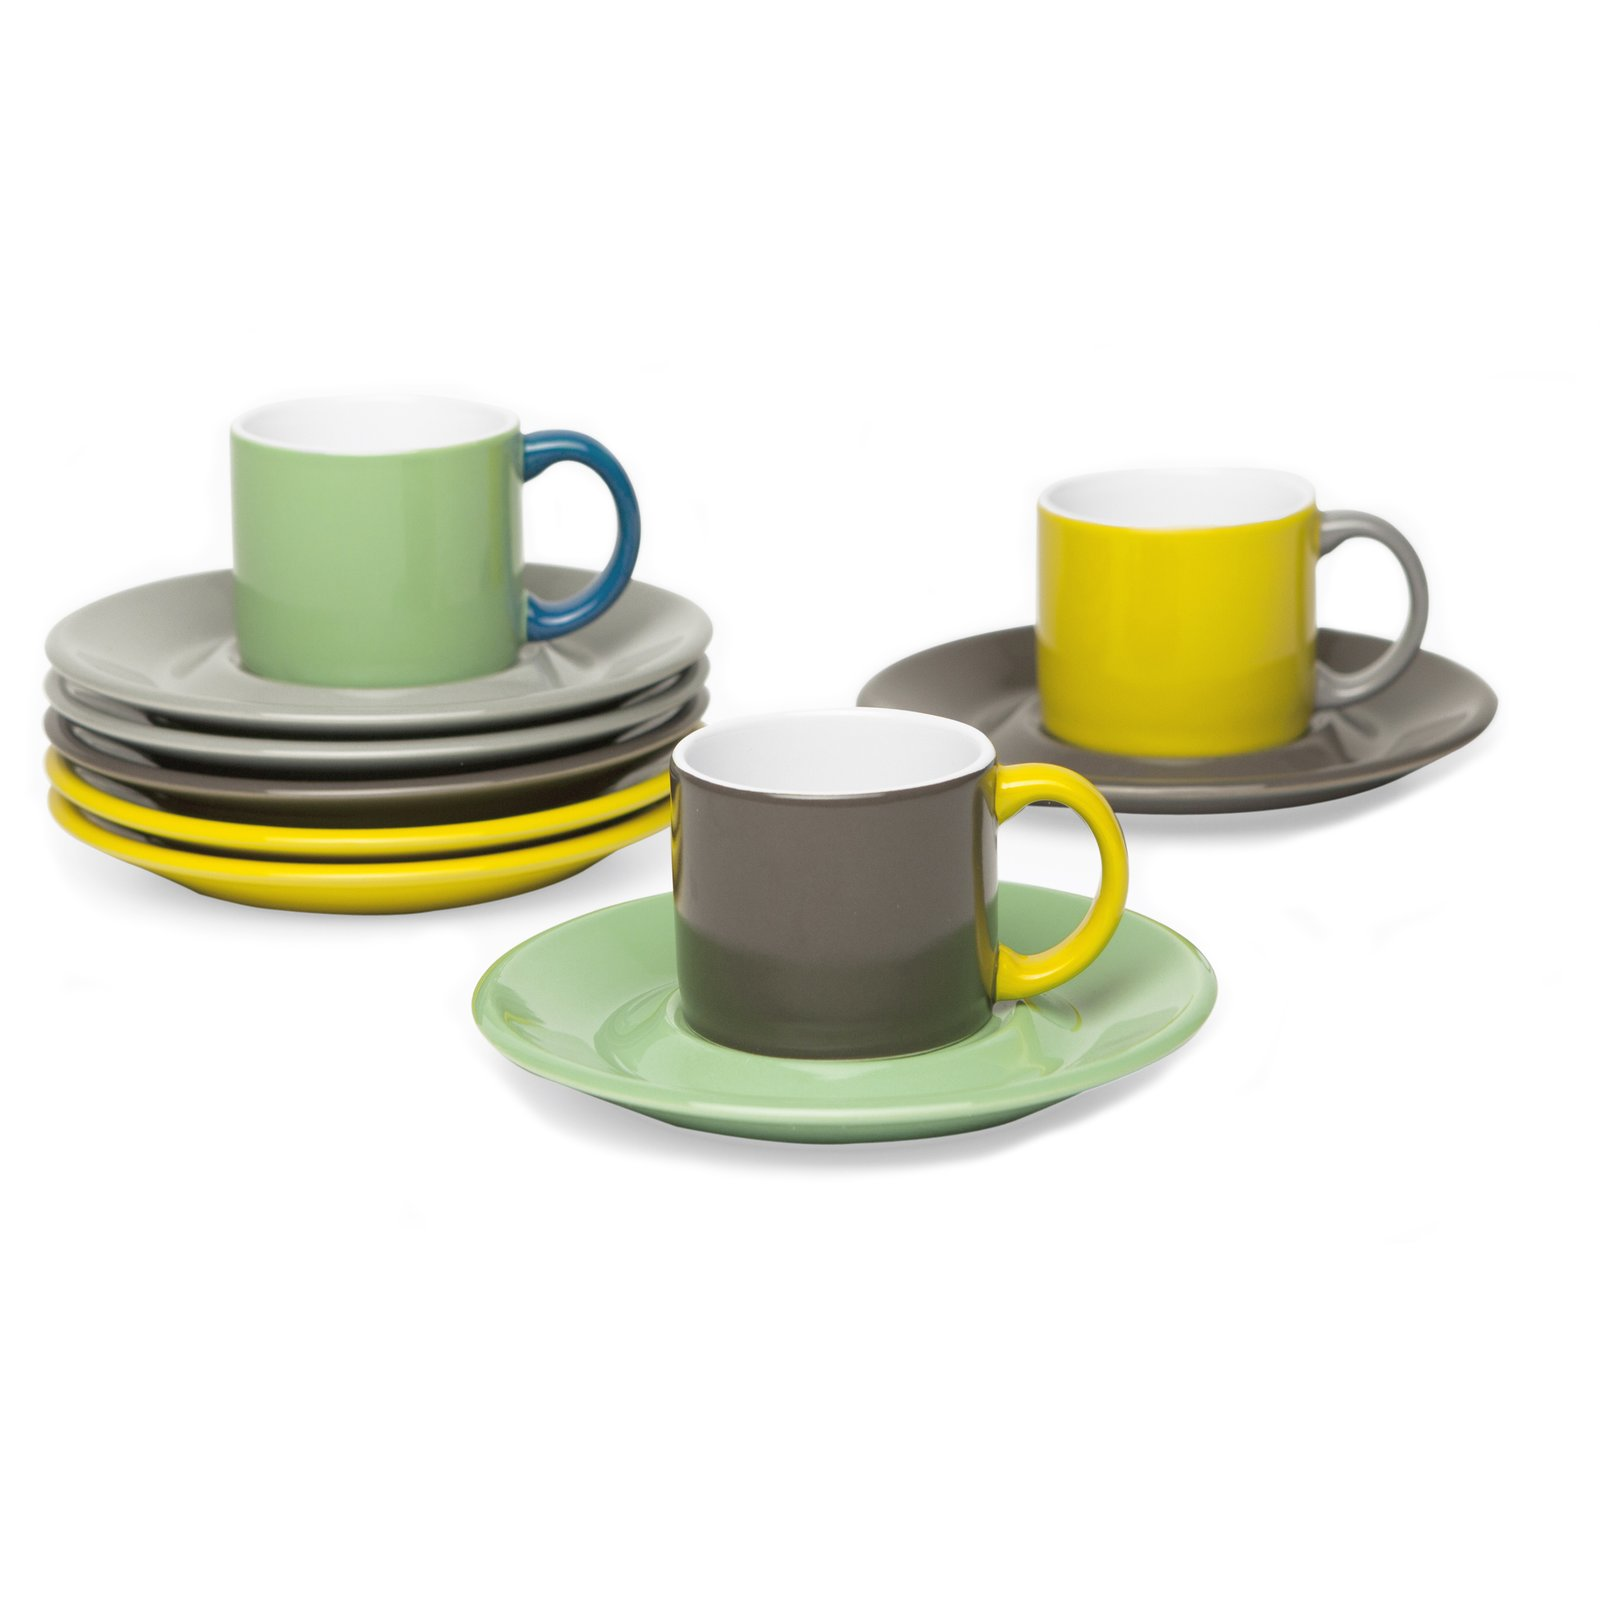 """Jansen+Co Espresso Mug and Saucer Made of high quality ceramic, these mugs are perfect for serving that little bit of espresso at the end of a fabulous meal. They are a beautiful combination of industrial production and hand finish. Their shape is classic with twist and is available in bright colors and urban tones.  Find this item at the Dwell Store.  Search """"jansen co my mug espresso saucer"""" from Fun and Funky Modern Tableware"""